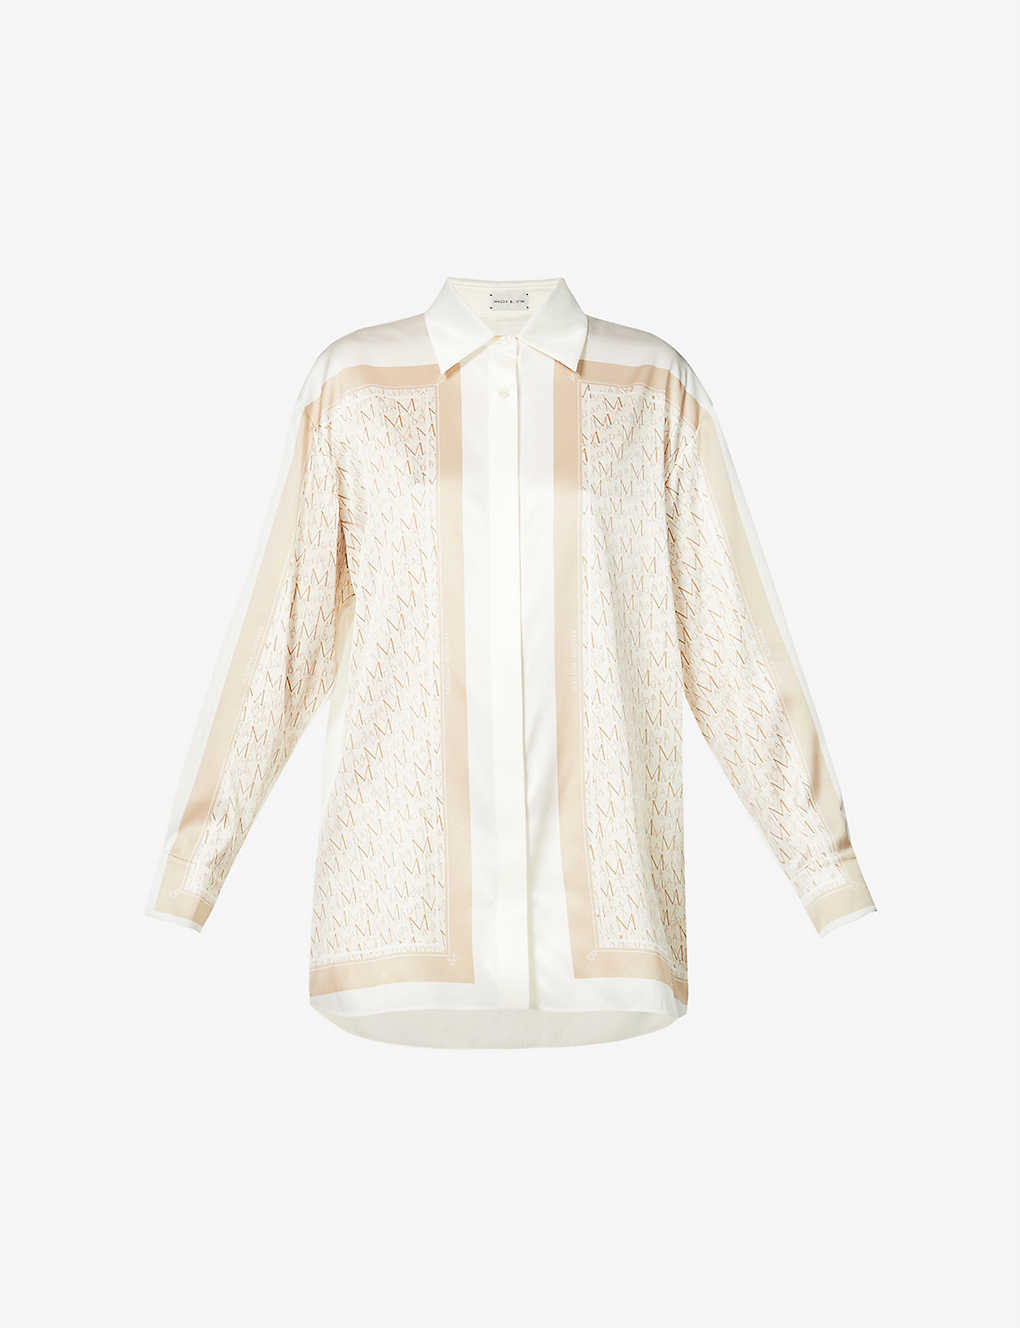 Branded stretch-silk shirt by MAGDA BUTRYM, available on selfridges.com for $1005 Candice Swanepoel Top Exact Product